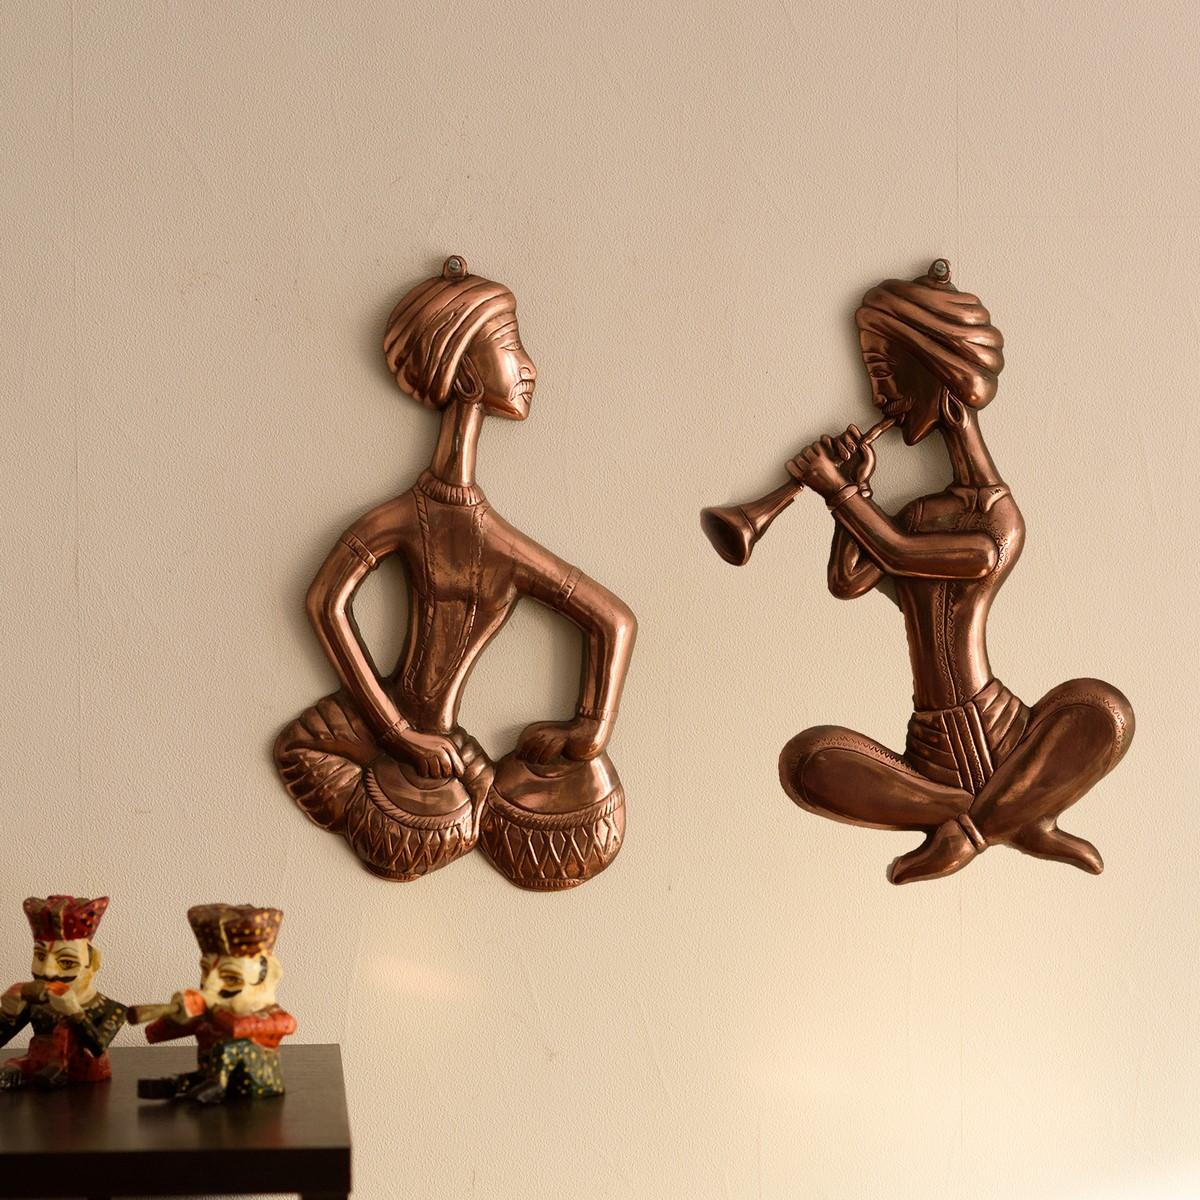 Set of 2 Musicians Metal Wall Hanging Indian Home Decor